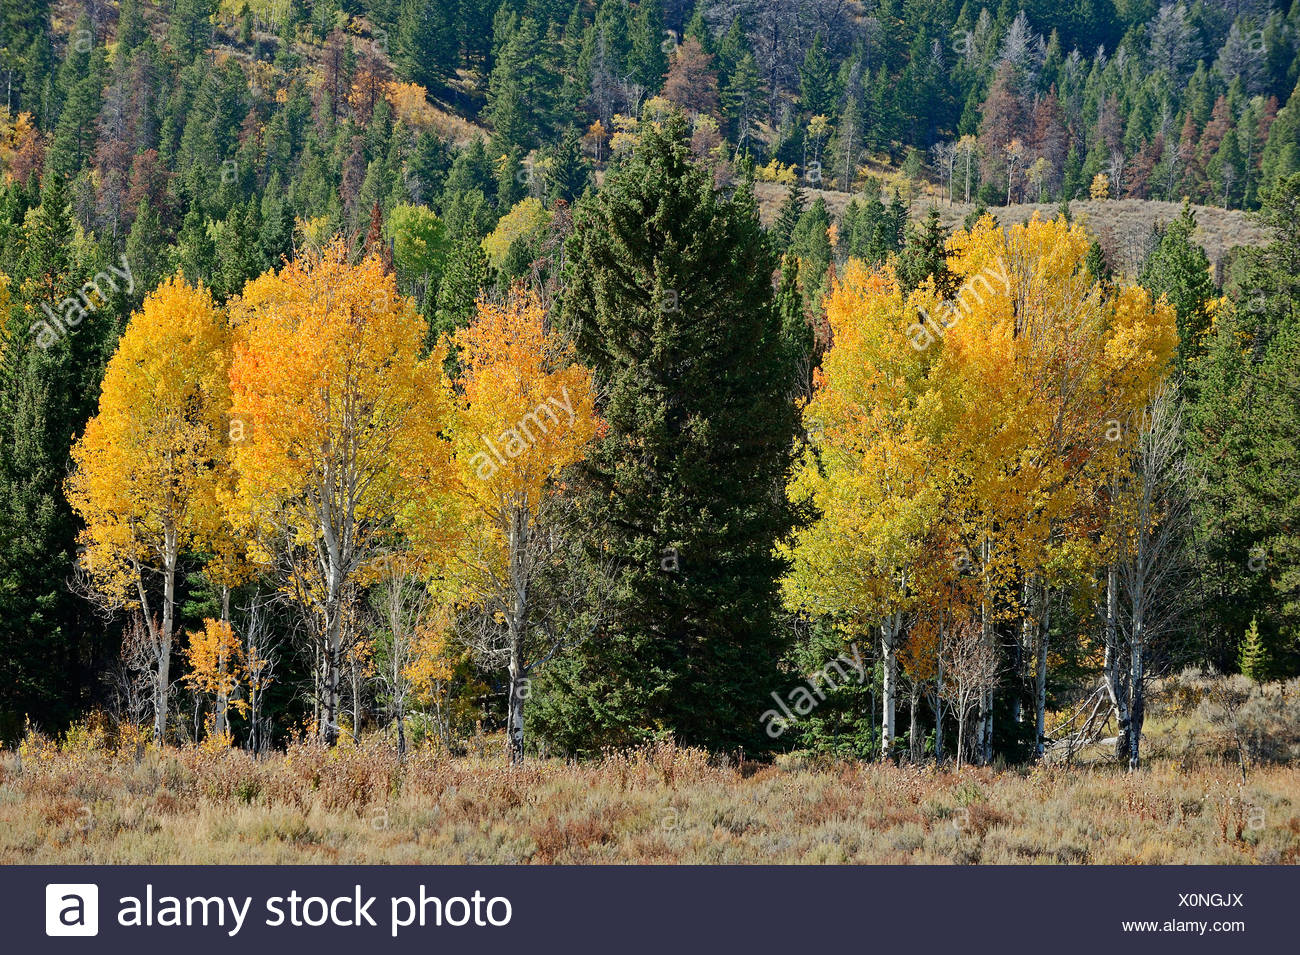 Quaking Aspen or Trembling Poplar (Populus tremuloides) and other conifer trees in autumn, Grand Teton National Park, Wyoming - Stock Image